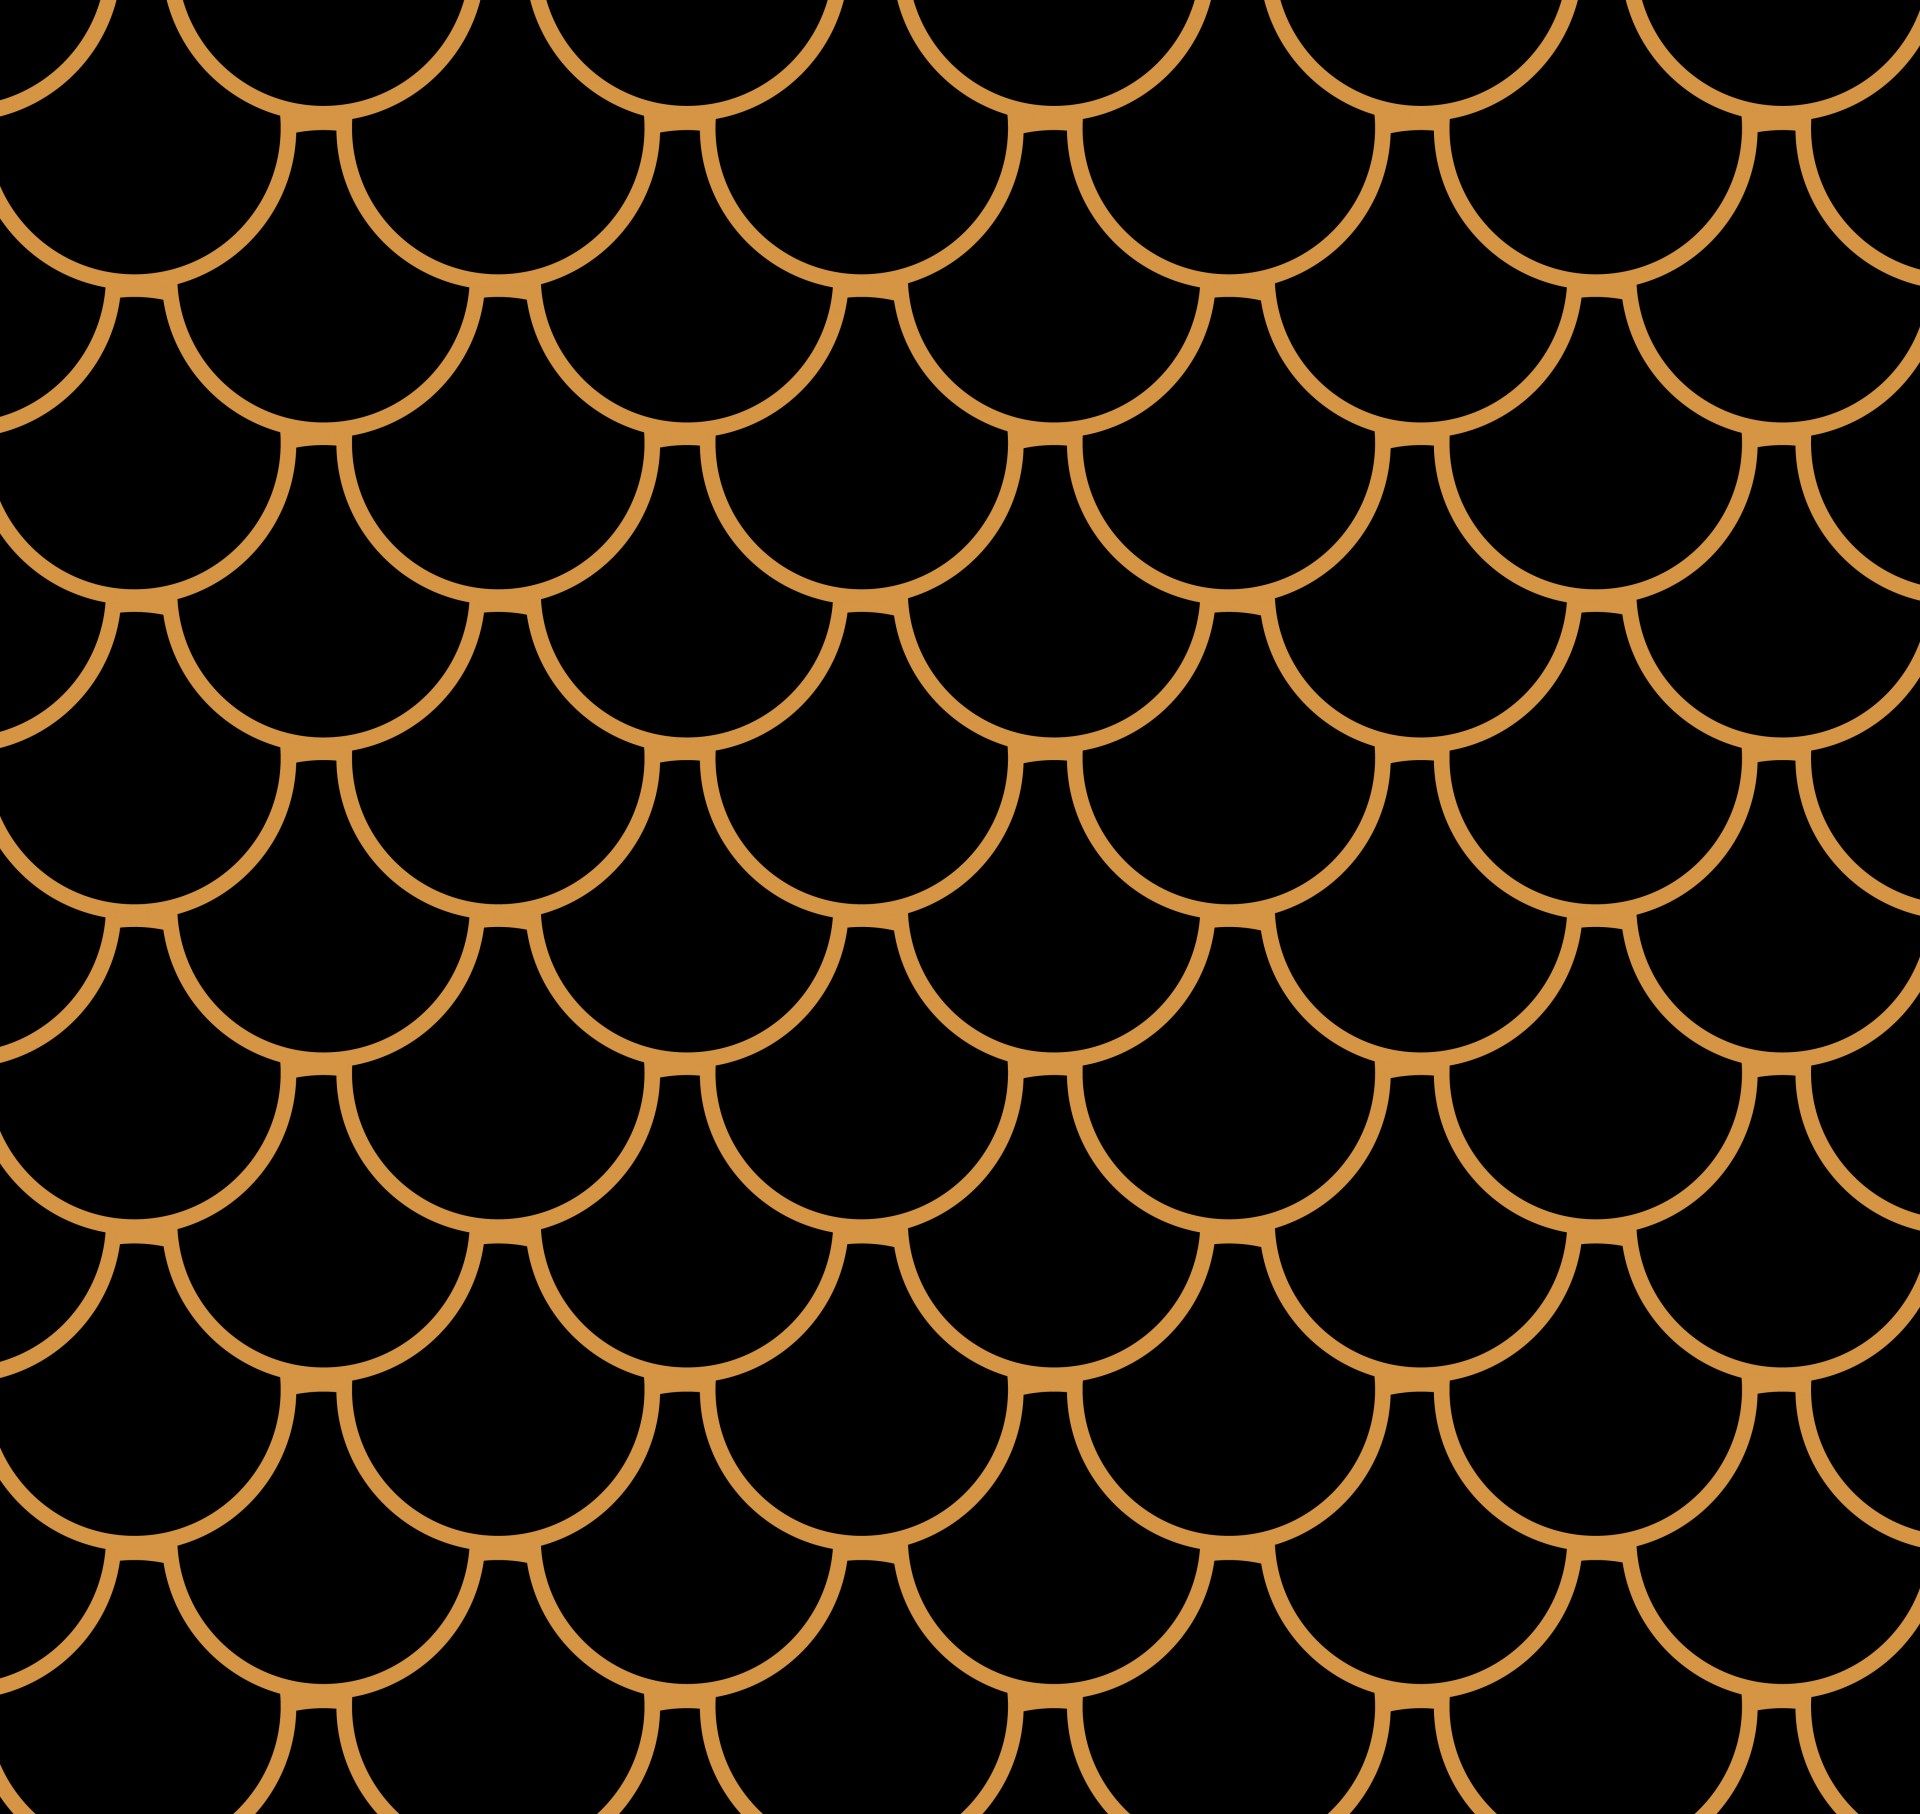 Black And Gold Wallpaper Fish Scales Wallpaper Background Free Stock Photo Public